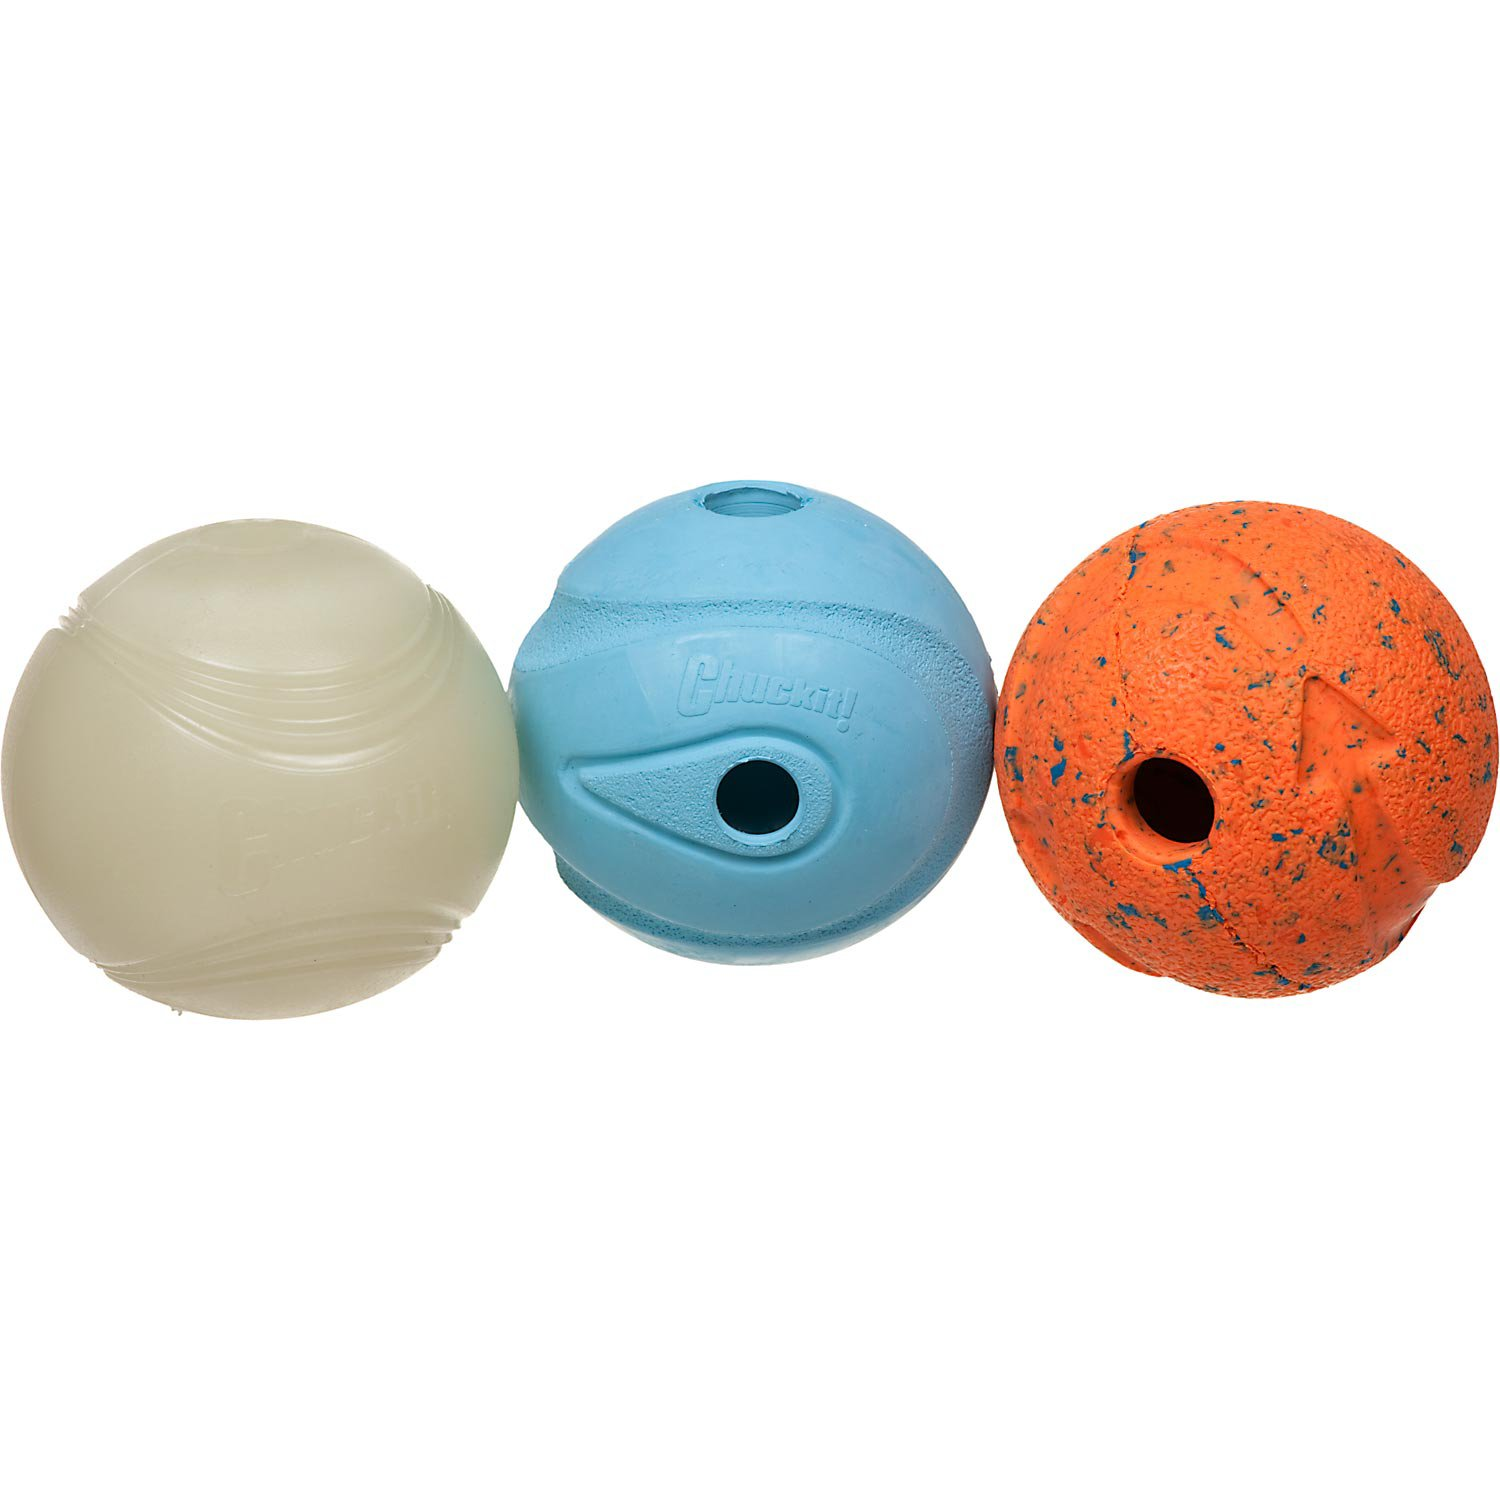 Dog Toys Balls : Chuckit fetch medley ball set dog toys petco